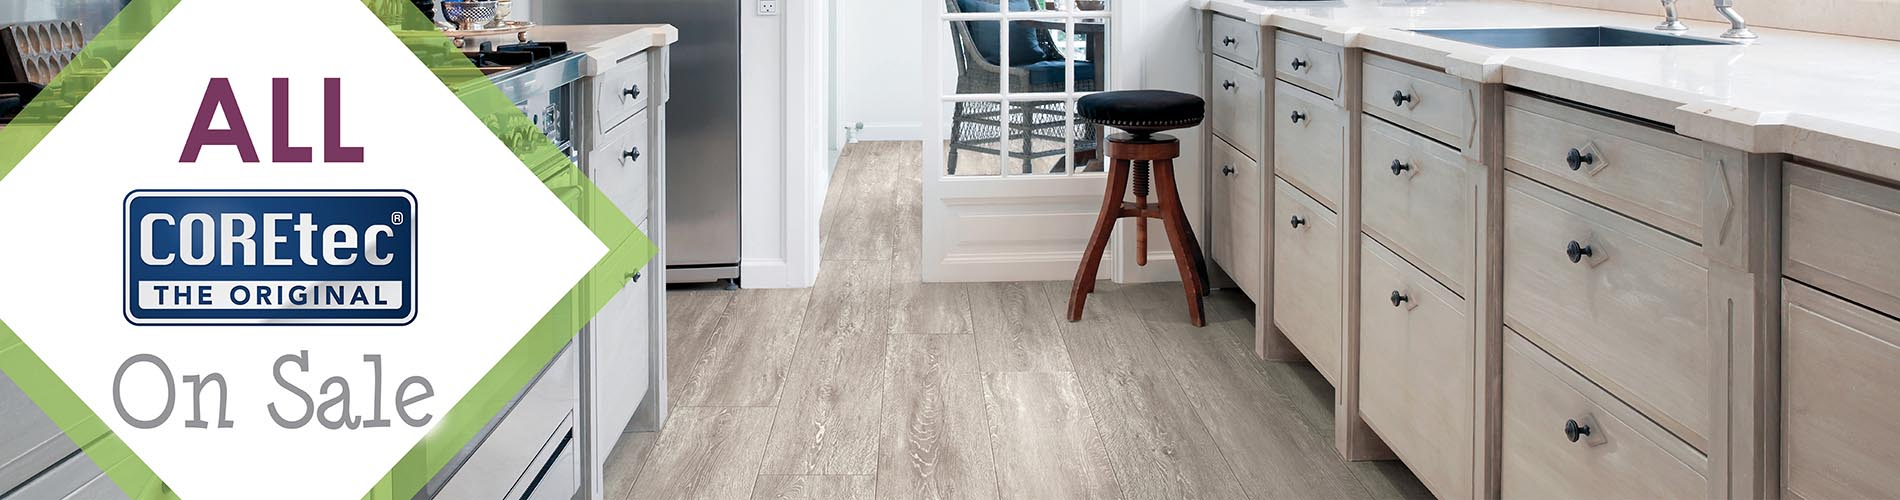 Save on ALL COREtec luxury vinyl flooring through the end of this year! Stop in today and learn about the latest trends in waterproof luxury vinyl!